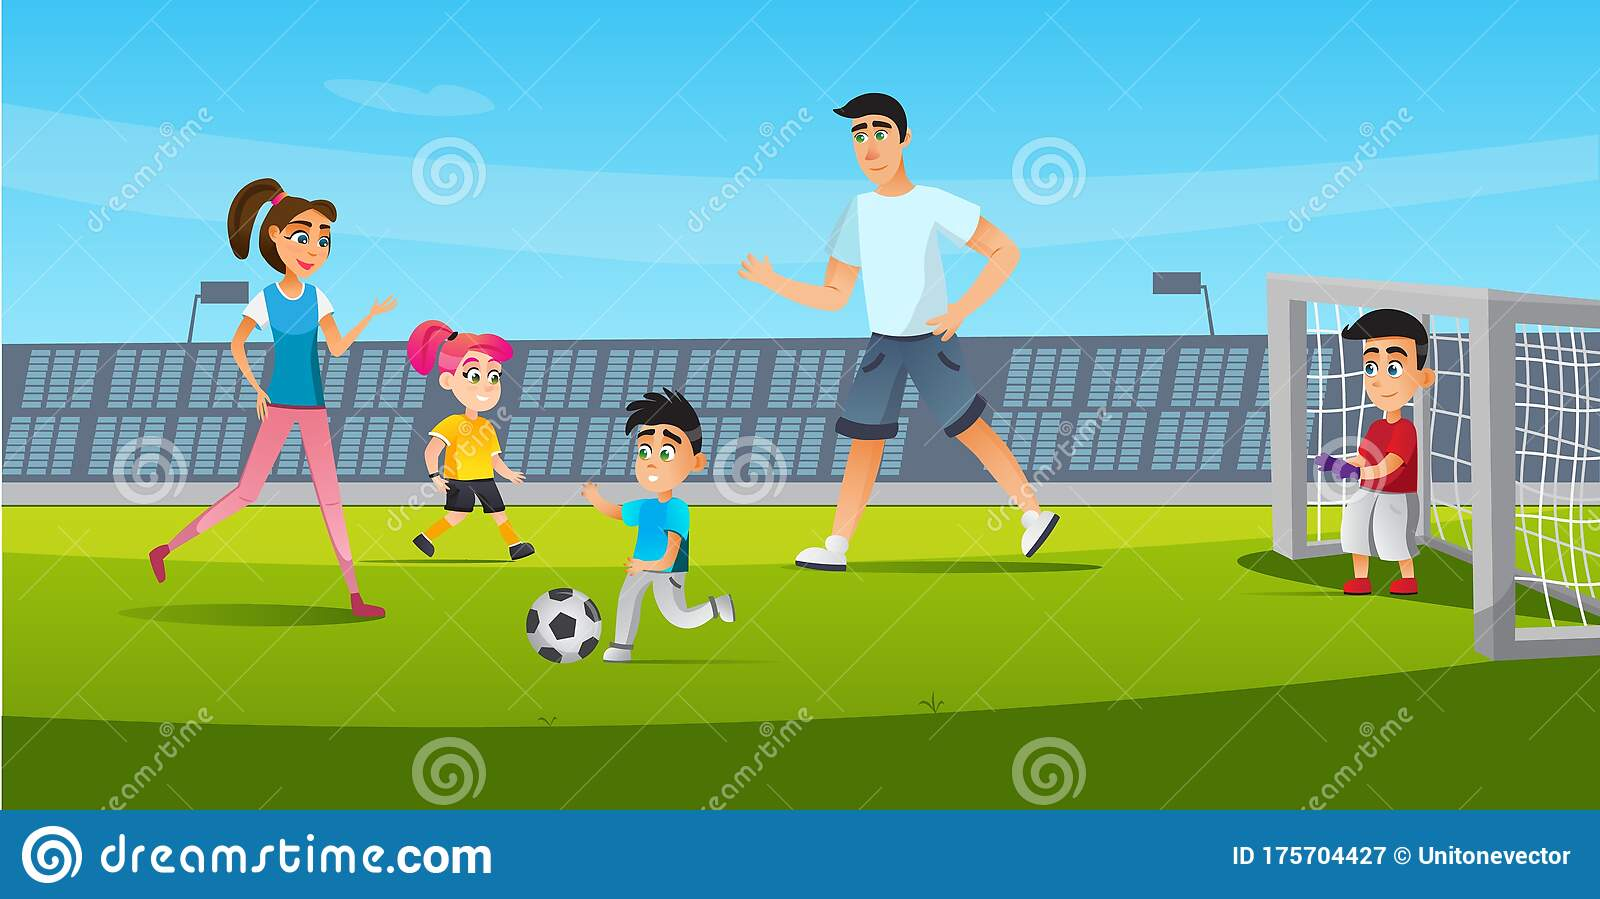 Family Game Cartoon Stock Illustrations 8 615 Family Game Cartoon Stock Illustrations Vectors Clipart Dreamstime